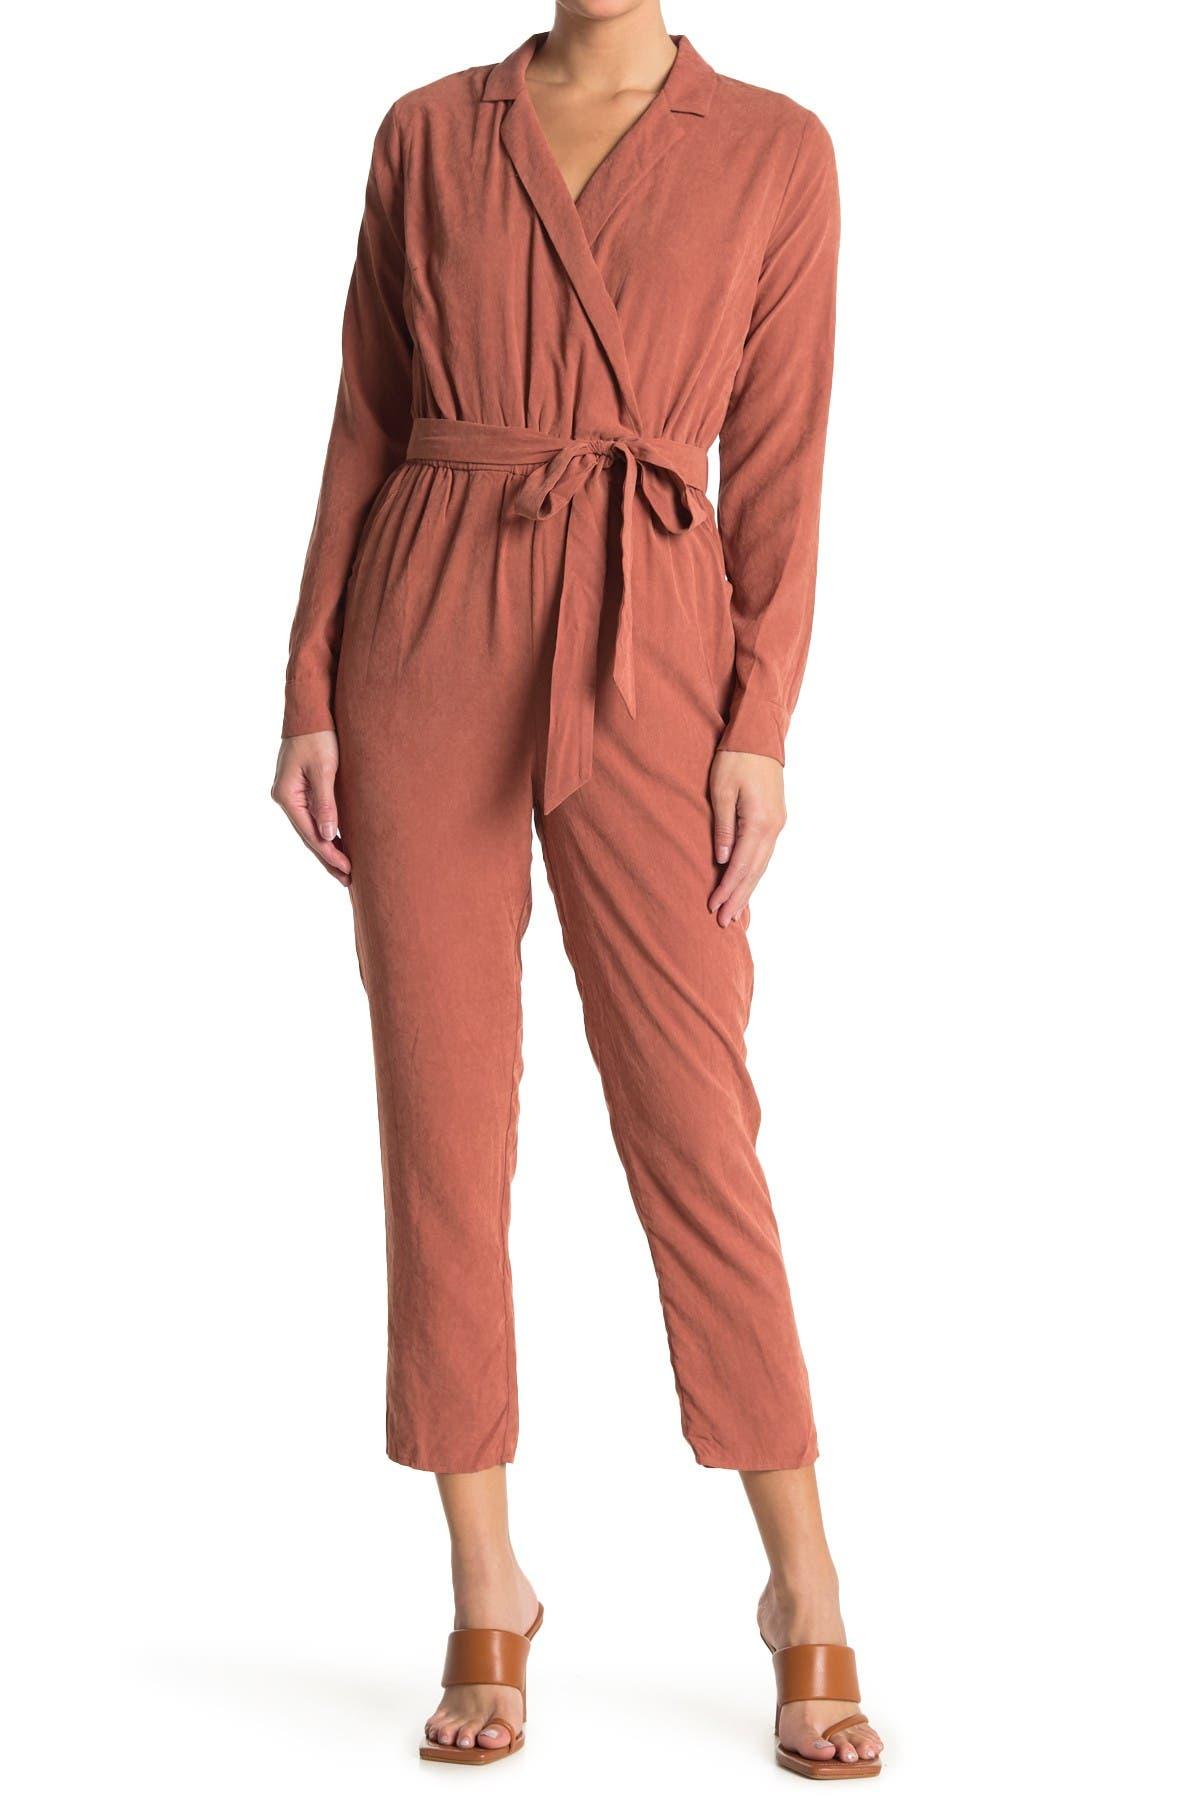 Image of LOST + WANDER Orchard Belted Long Sleeve Jumpsuit